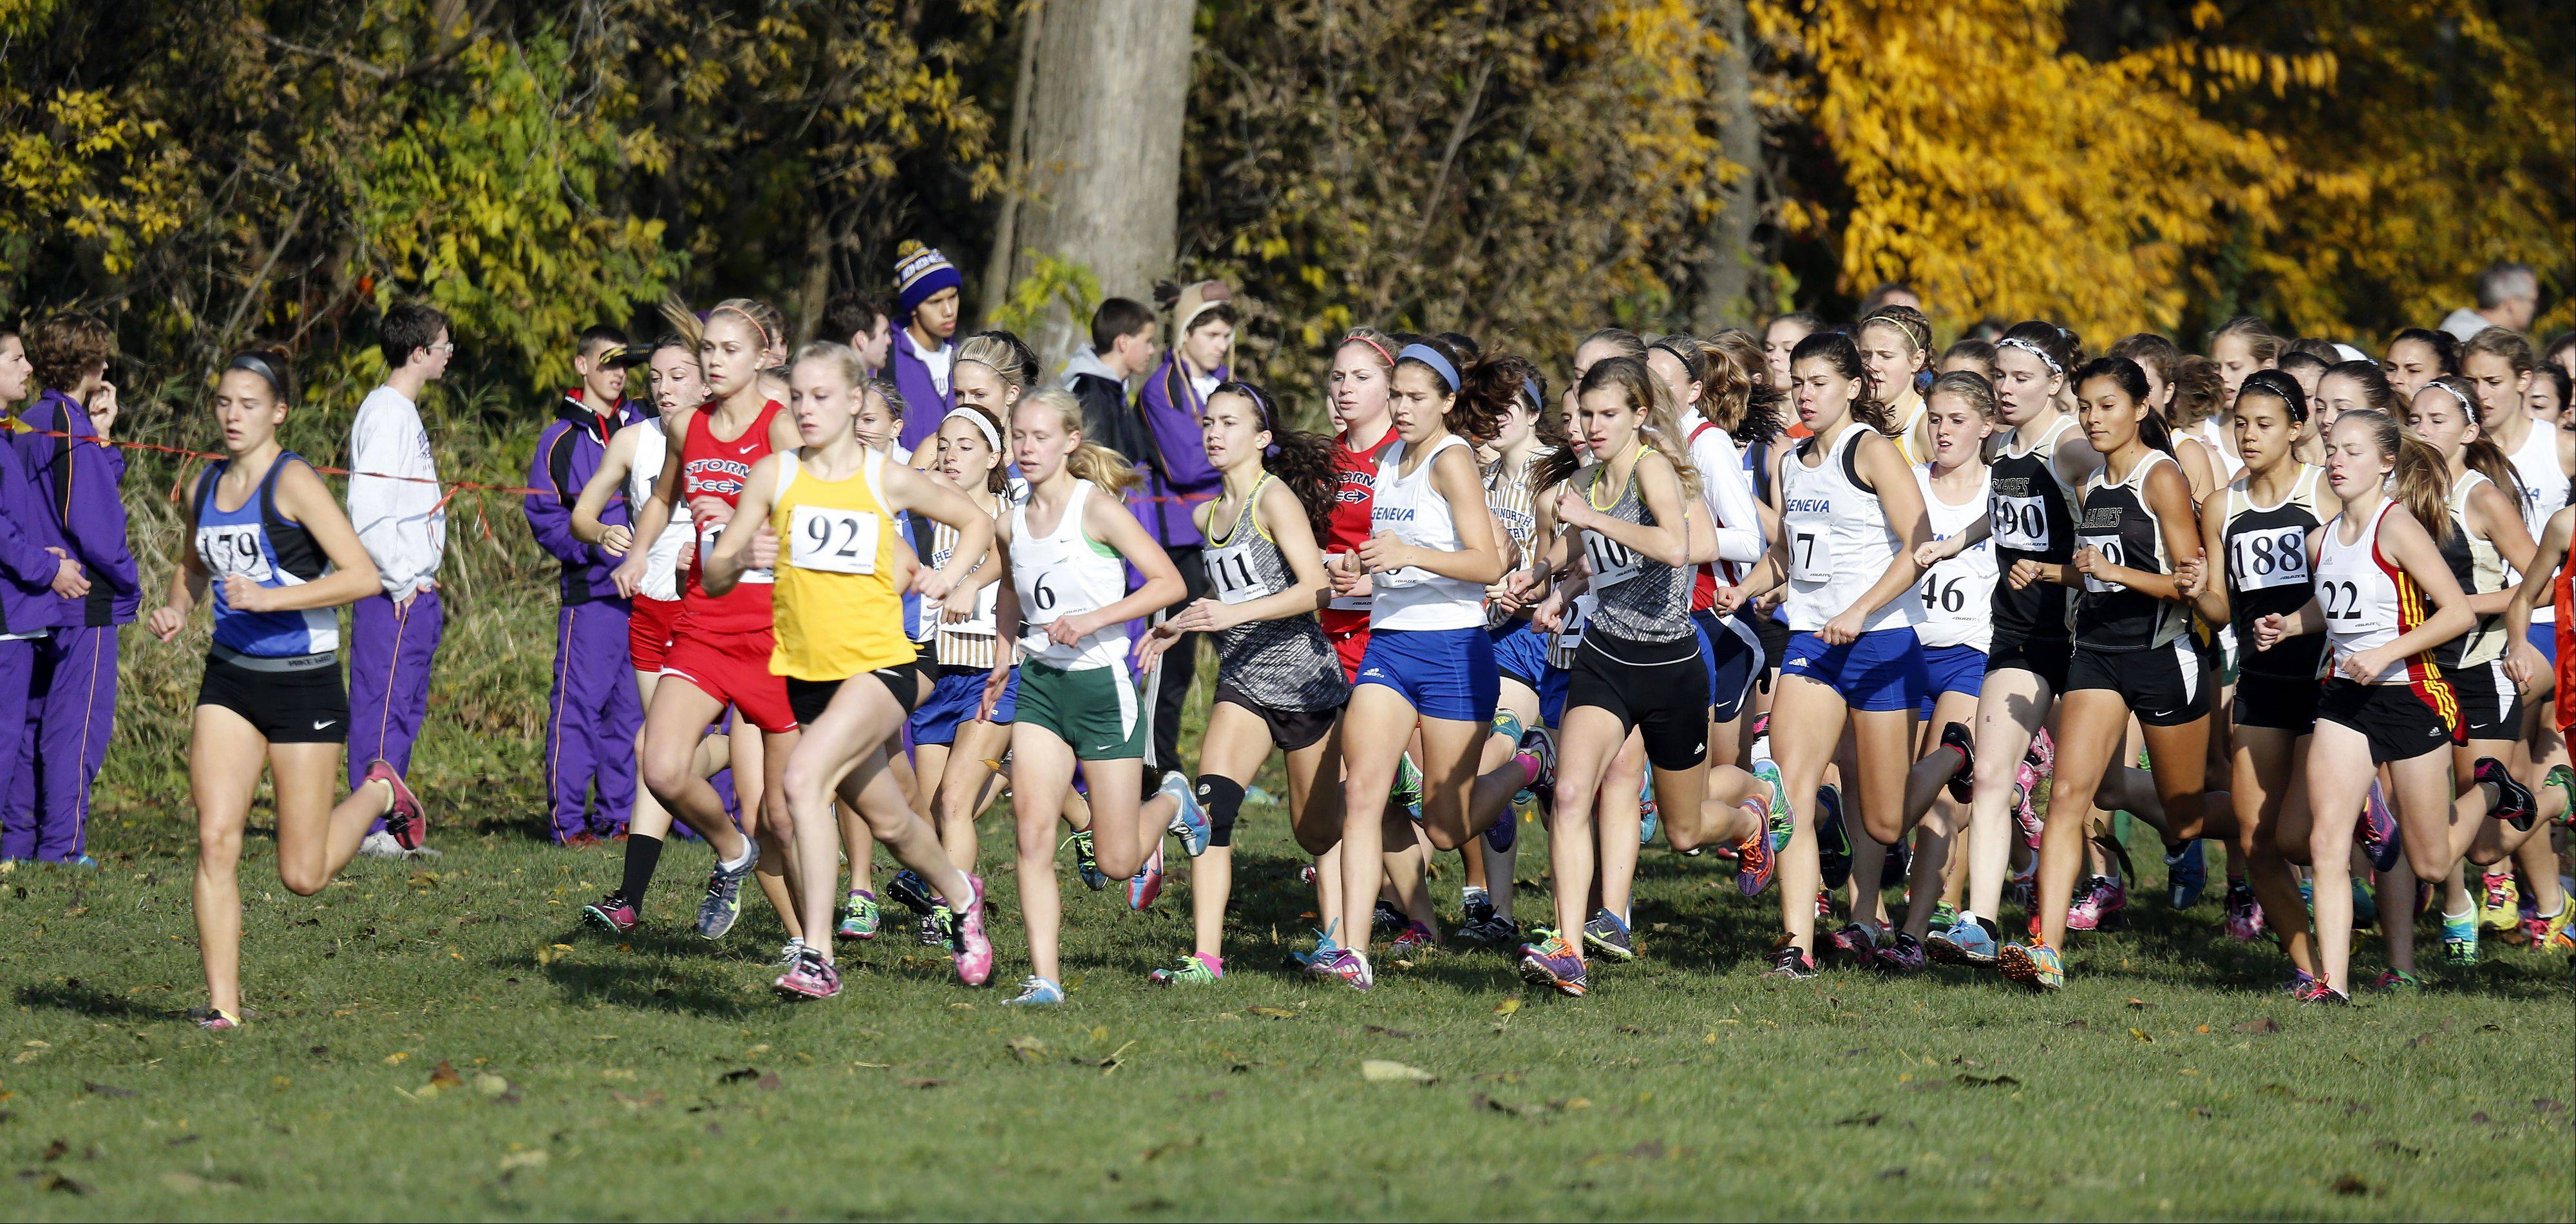 The start of the Waubonsie Valley girls cross country Sectional in Aurora.